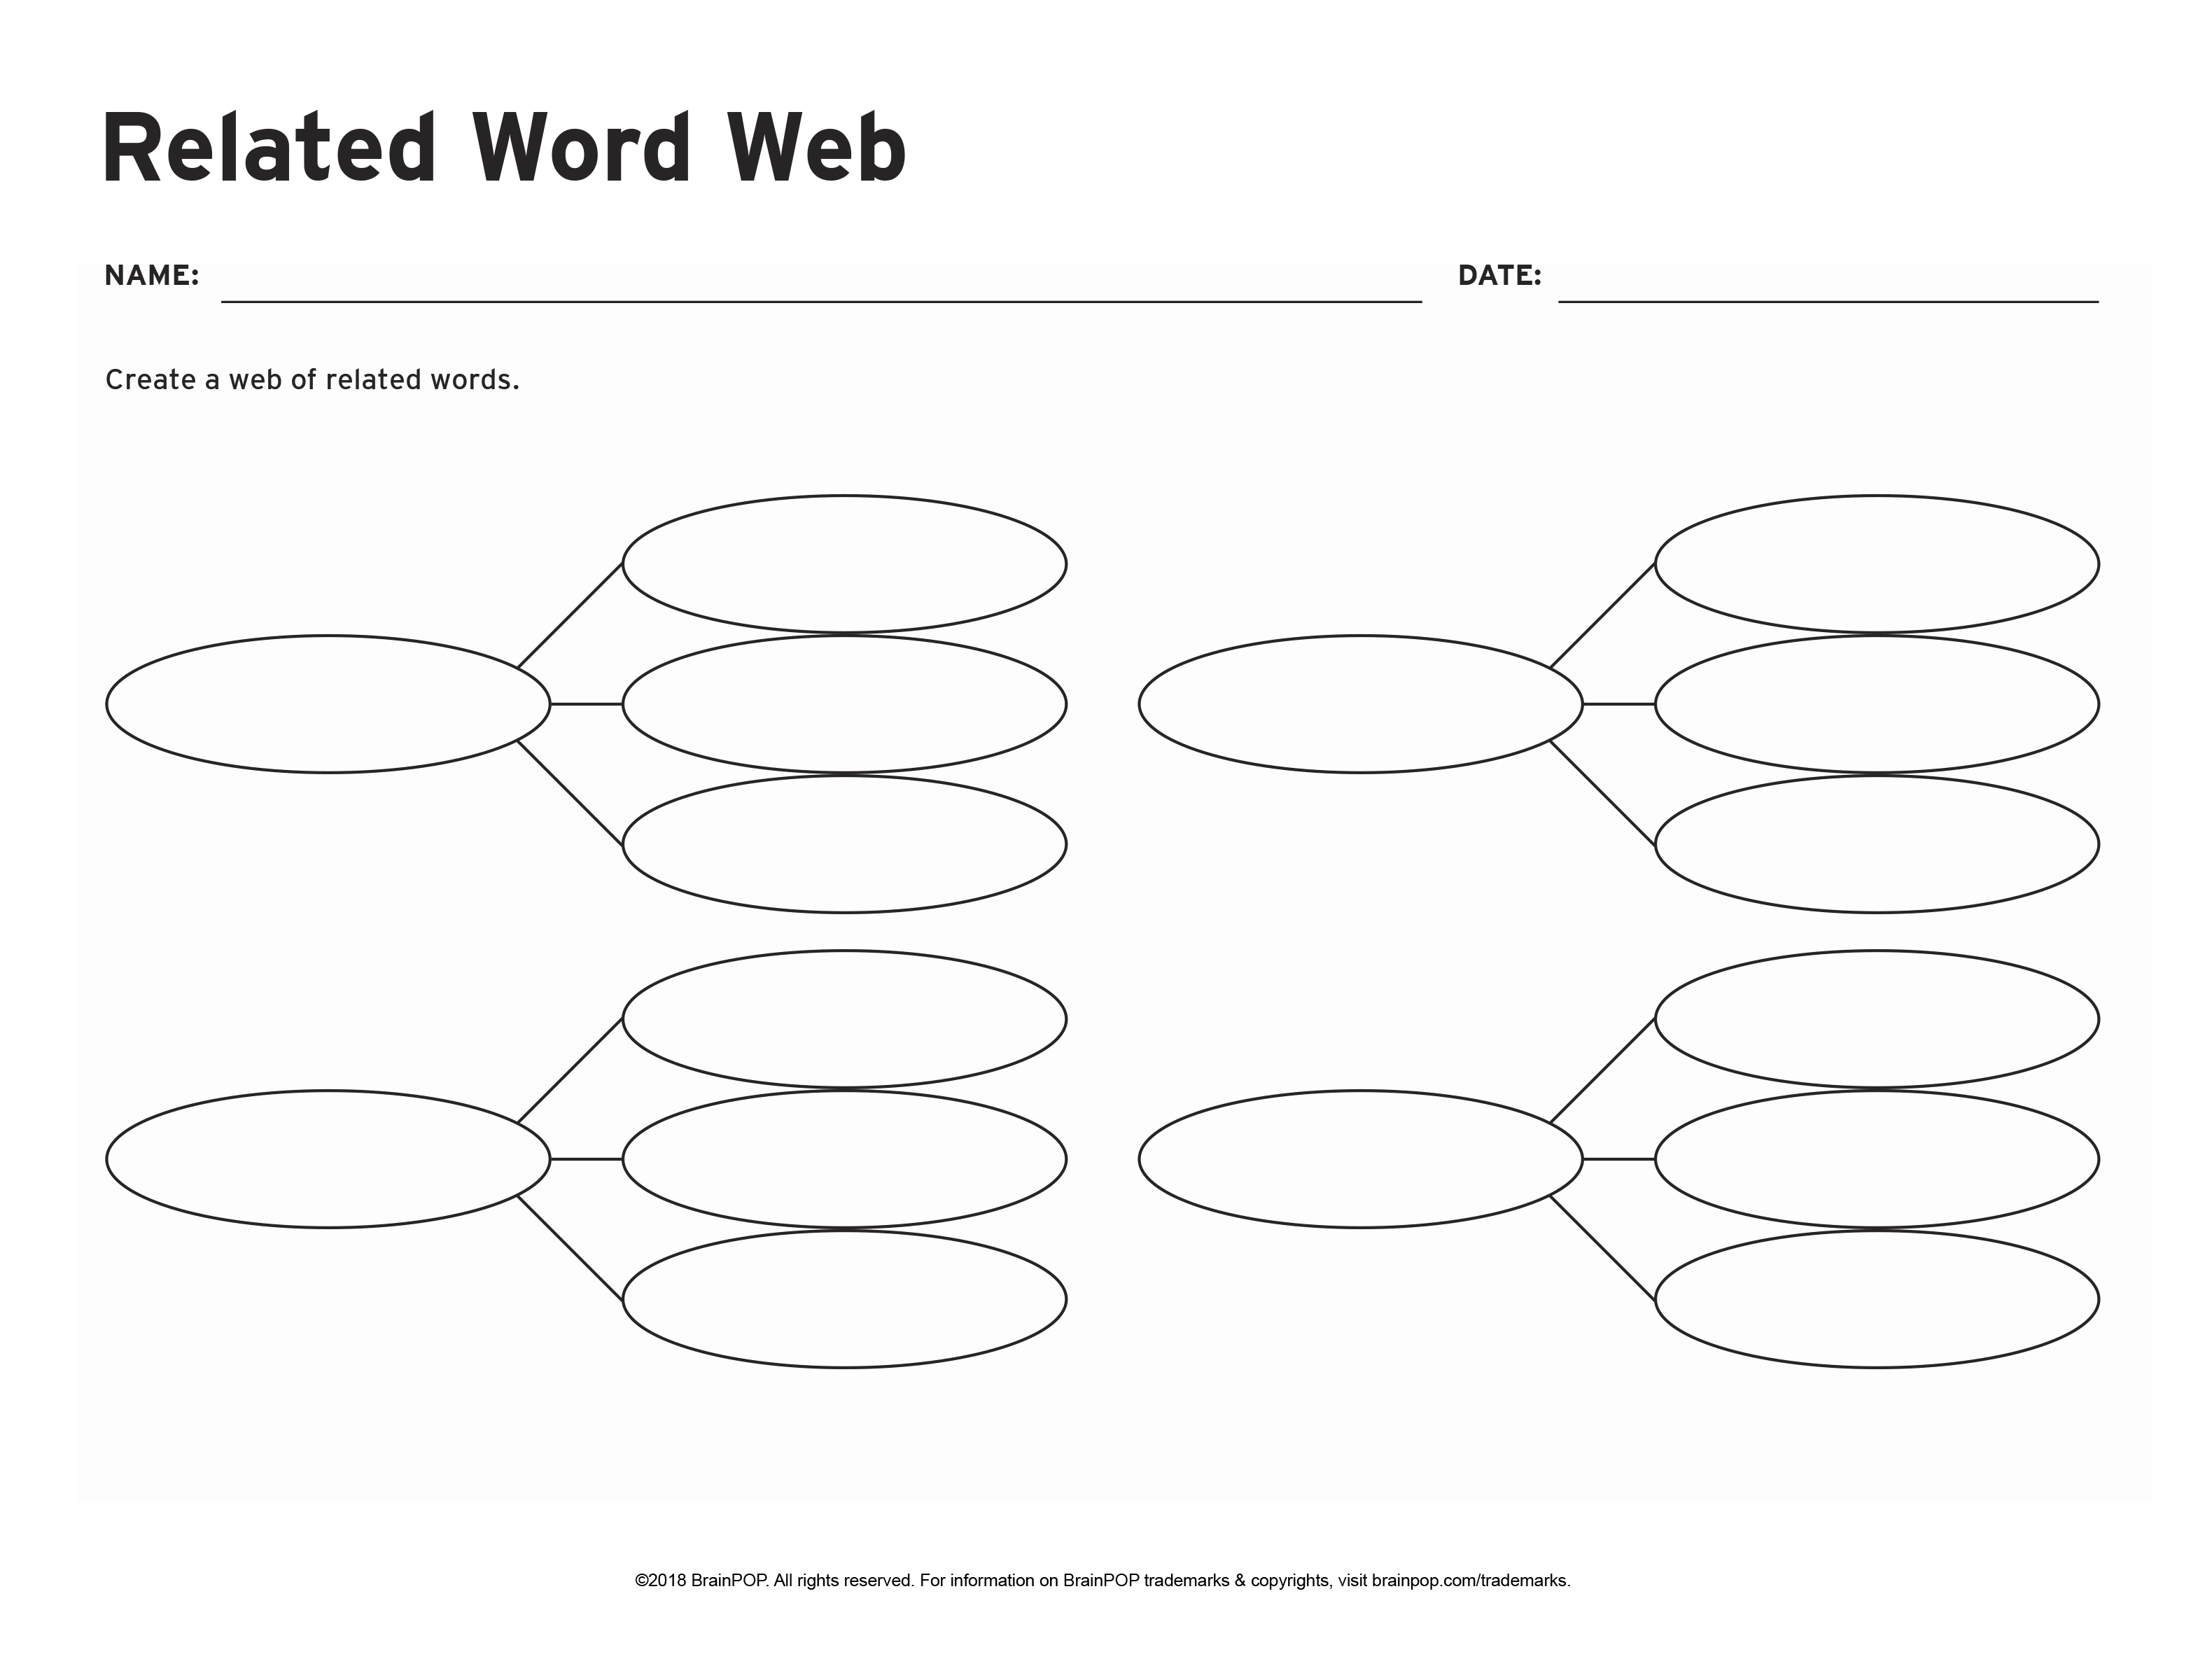 Related Word Web